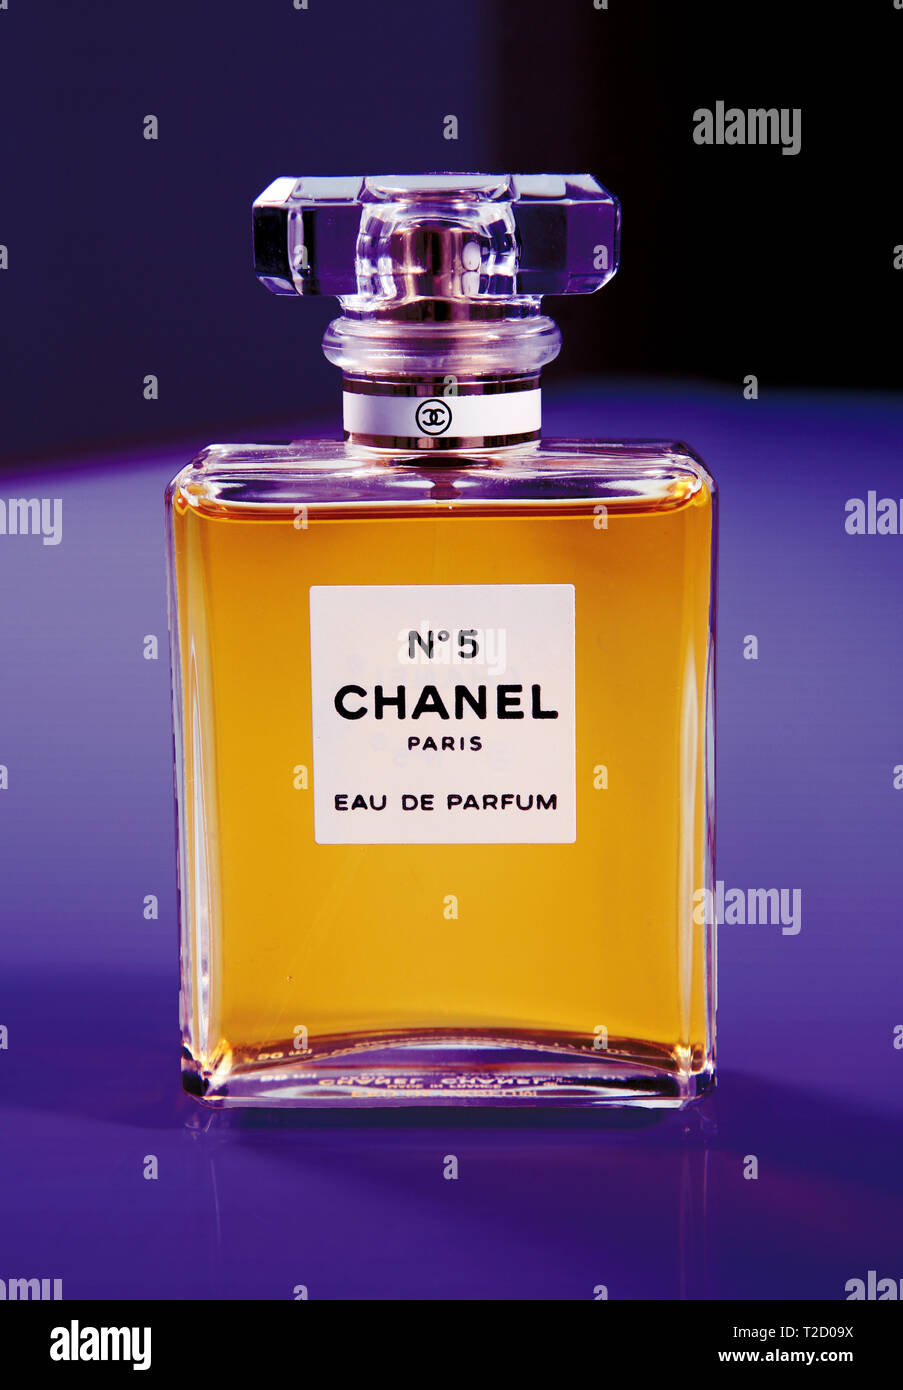 Chanel Perfumes Stock Photos Chanel Perfumes Stock Images Alamy